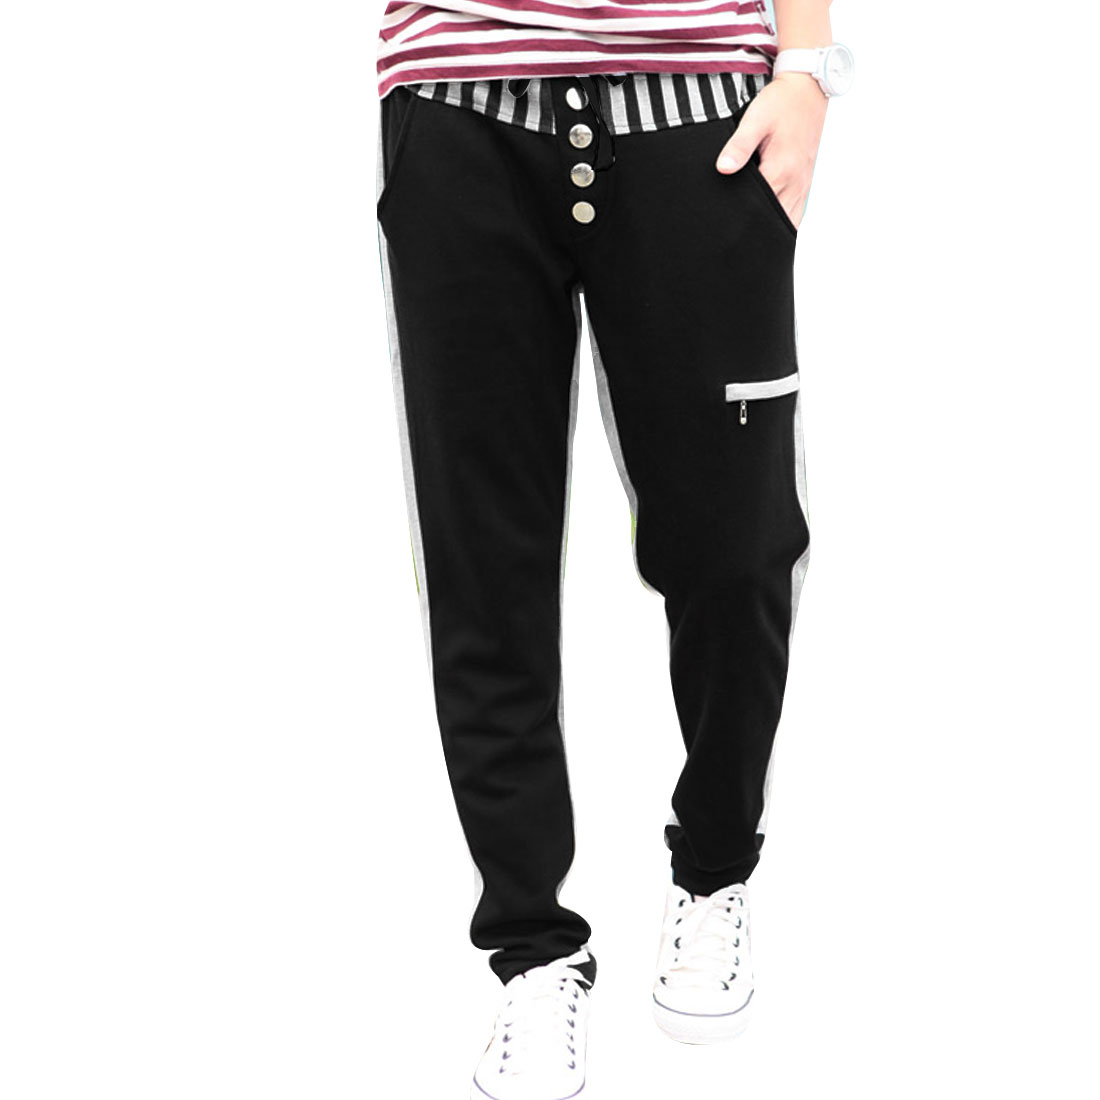 Korean Men Letter Printed Elastic Waist Black Gray Pants W30